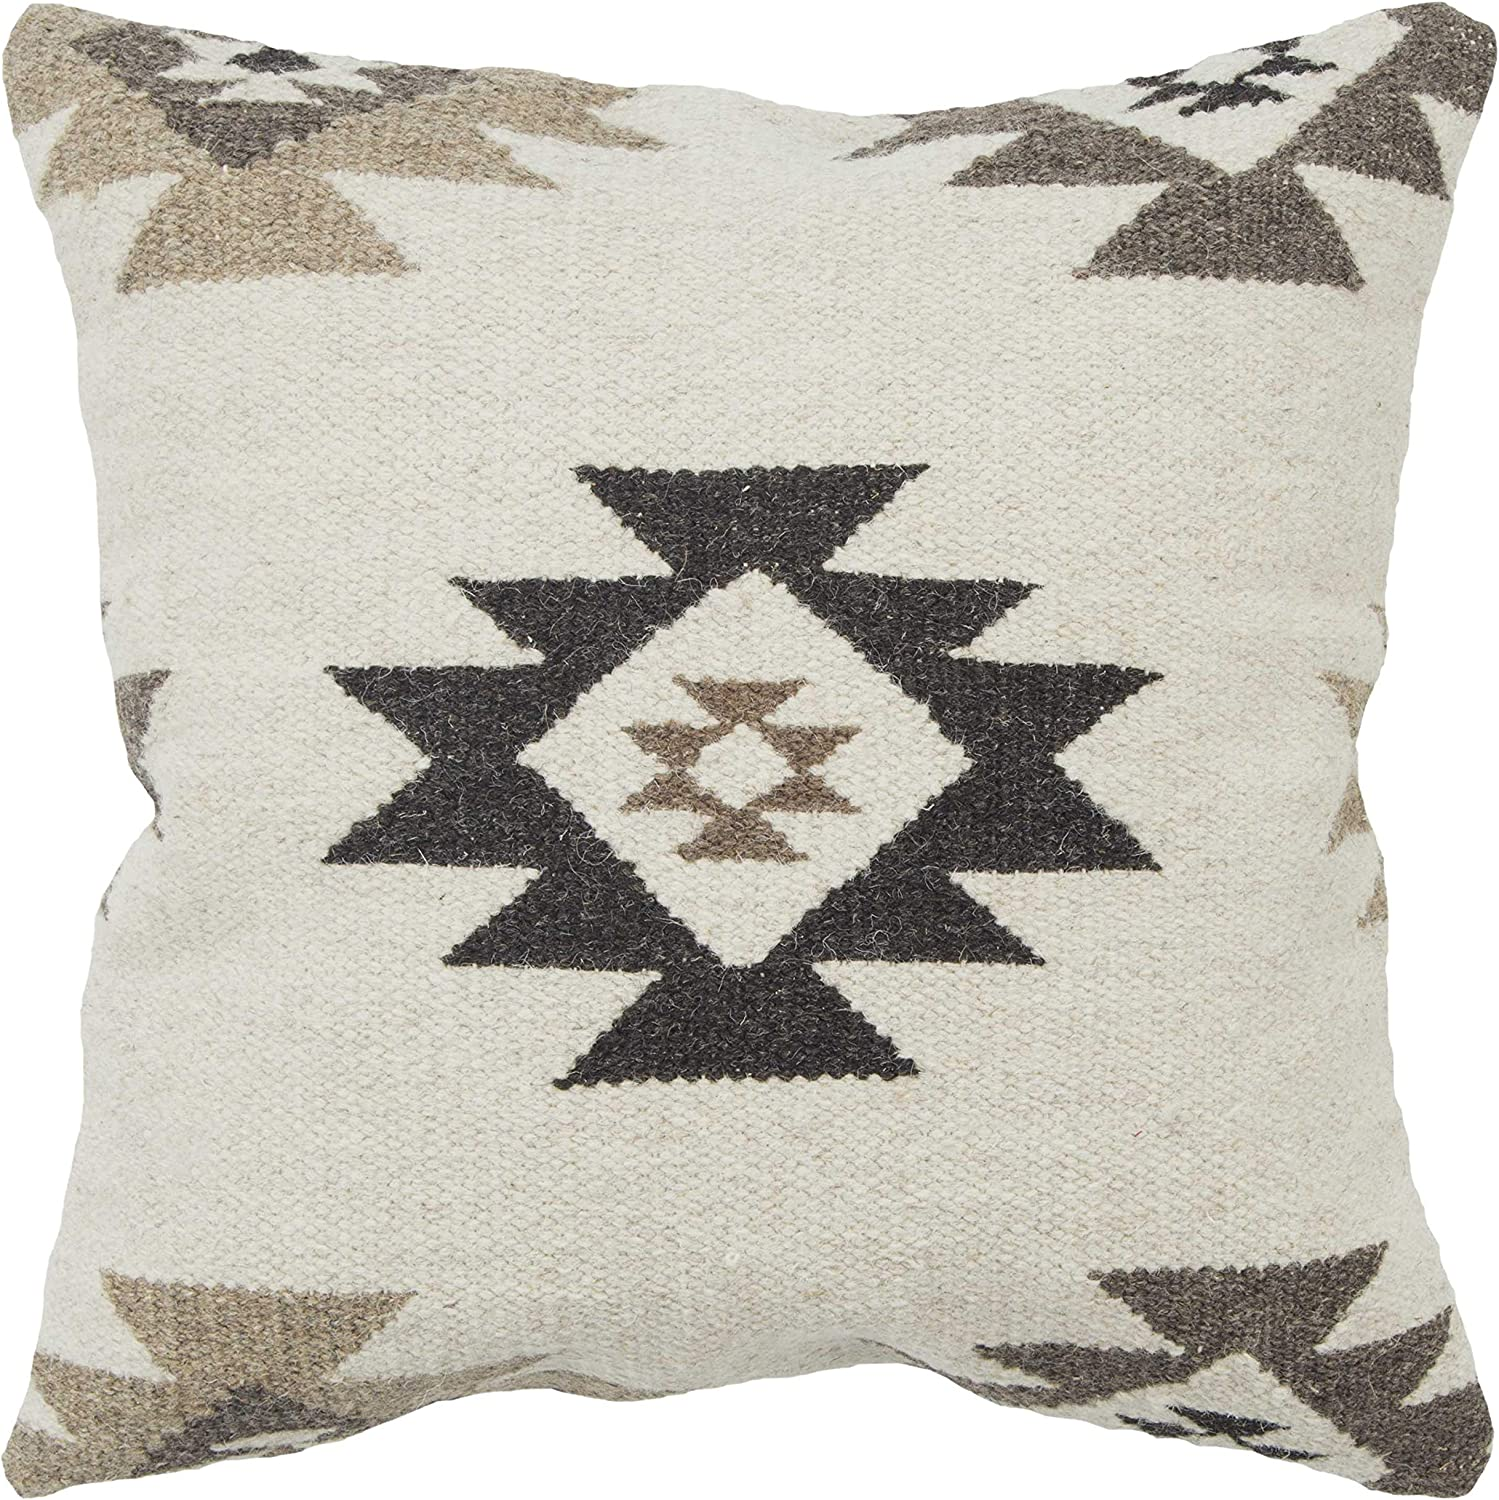 Rizzy Home T13806 Decorative Pillow, 22